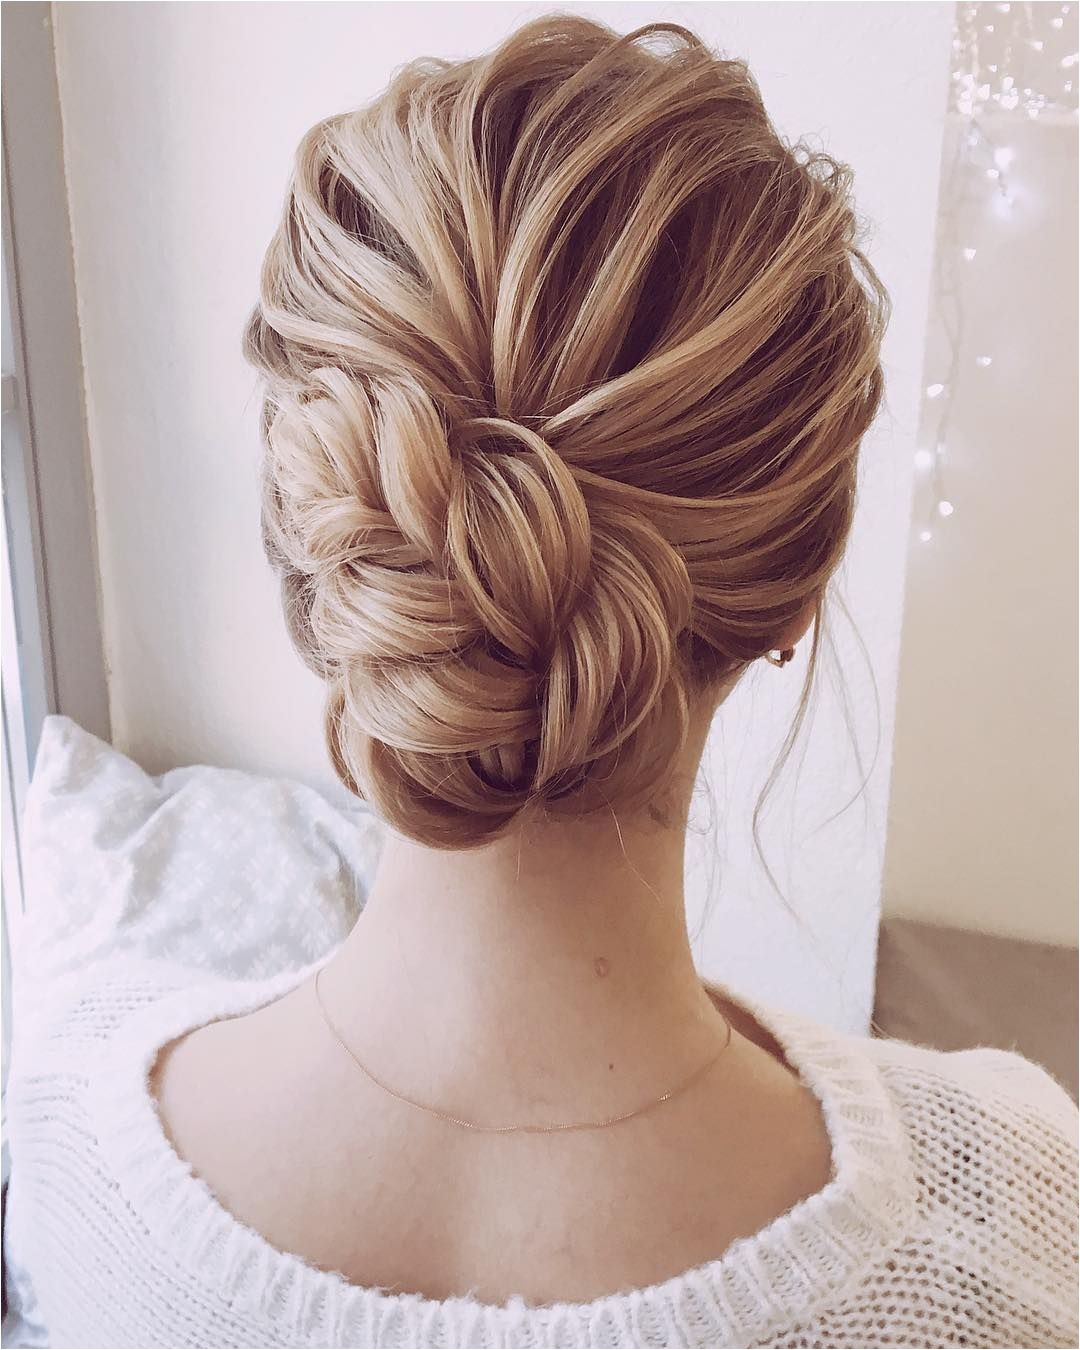 Jaw dropping wedding updo updo hairstyle